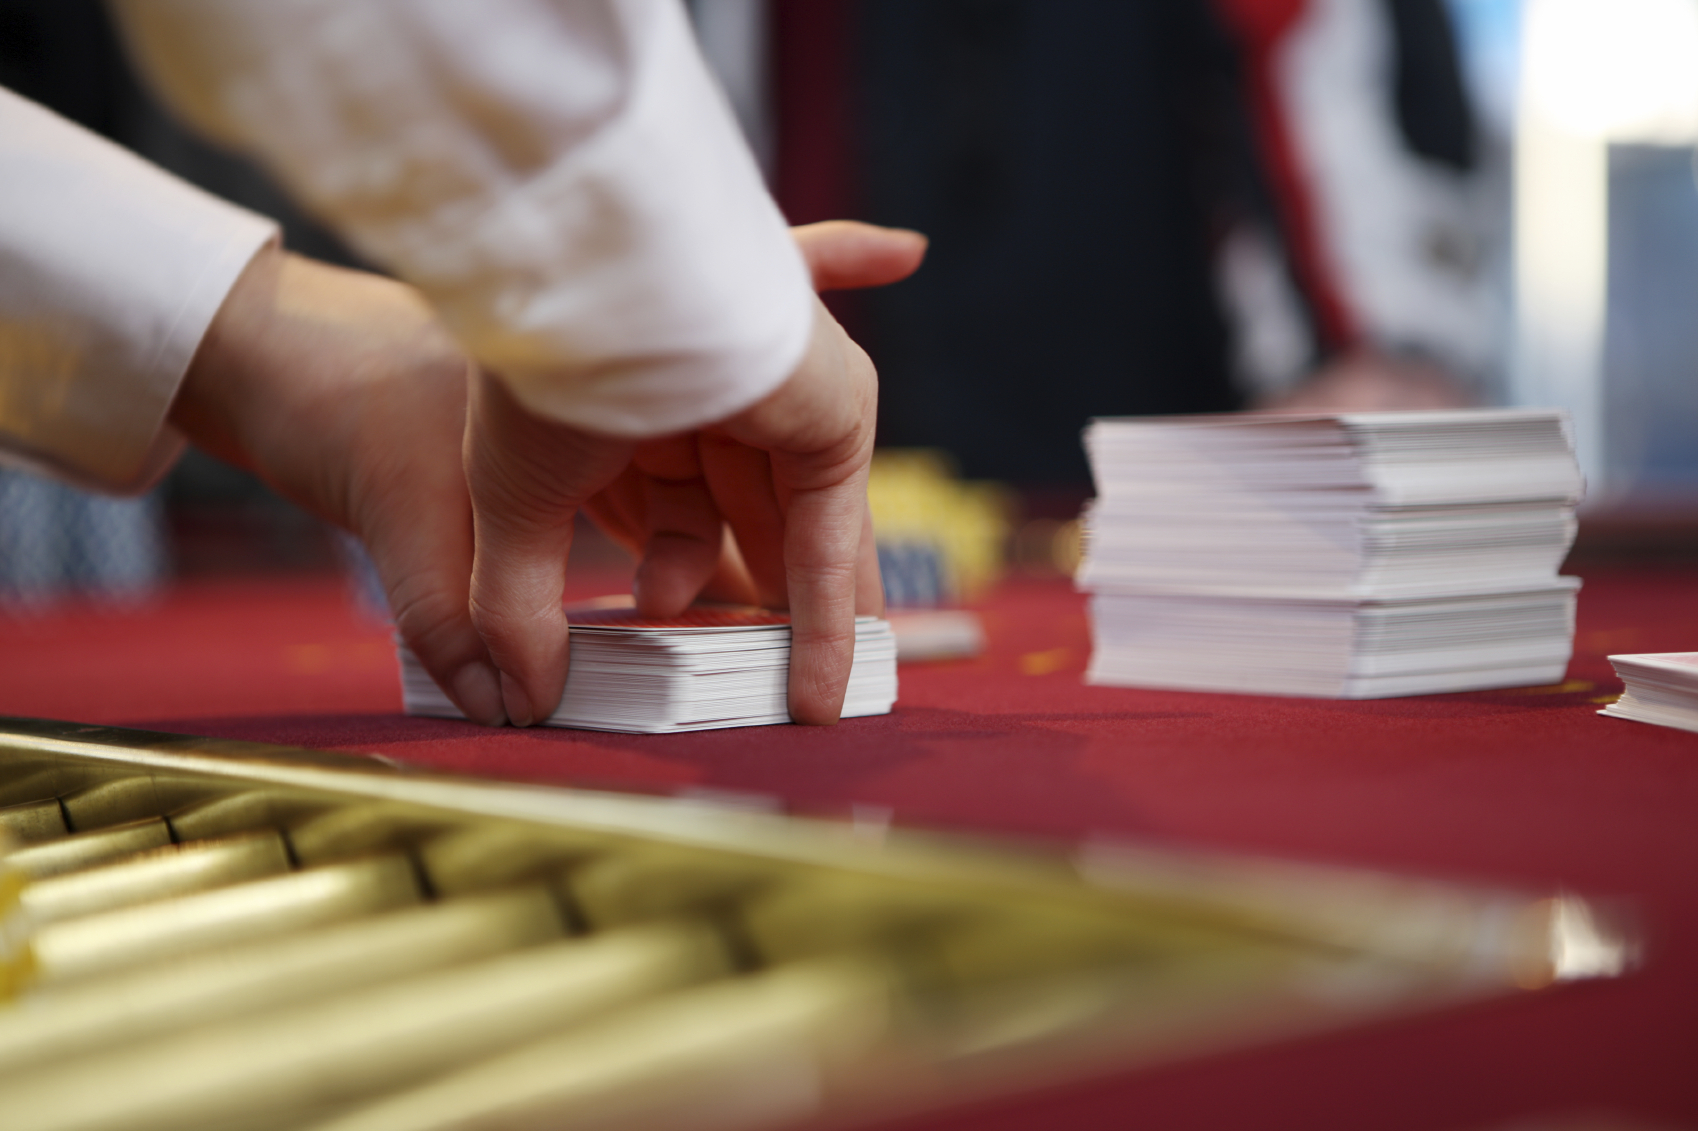 Man dealing cards, blurred, space for copy, canon 1Ds mark III